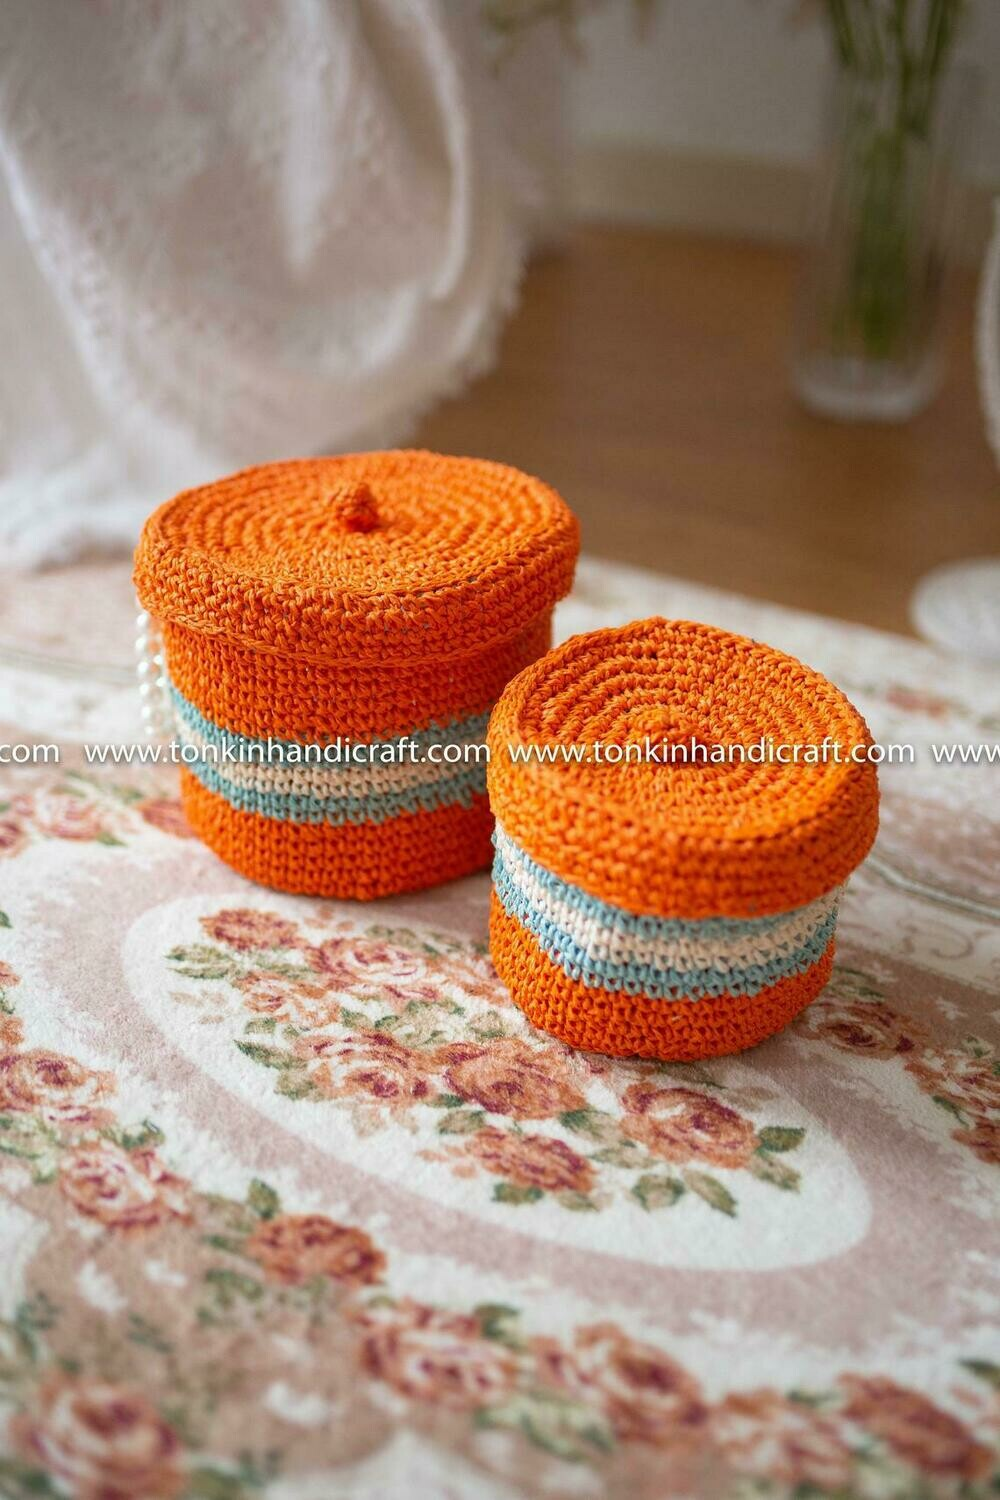 Set of 2 Braided Handwoven Orange Natural Round Holder basket with lid